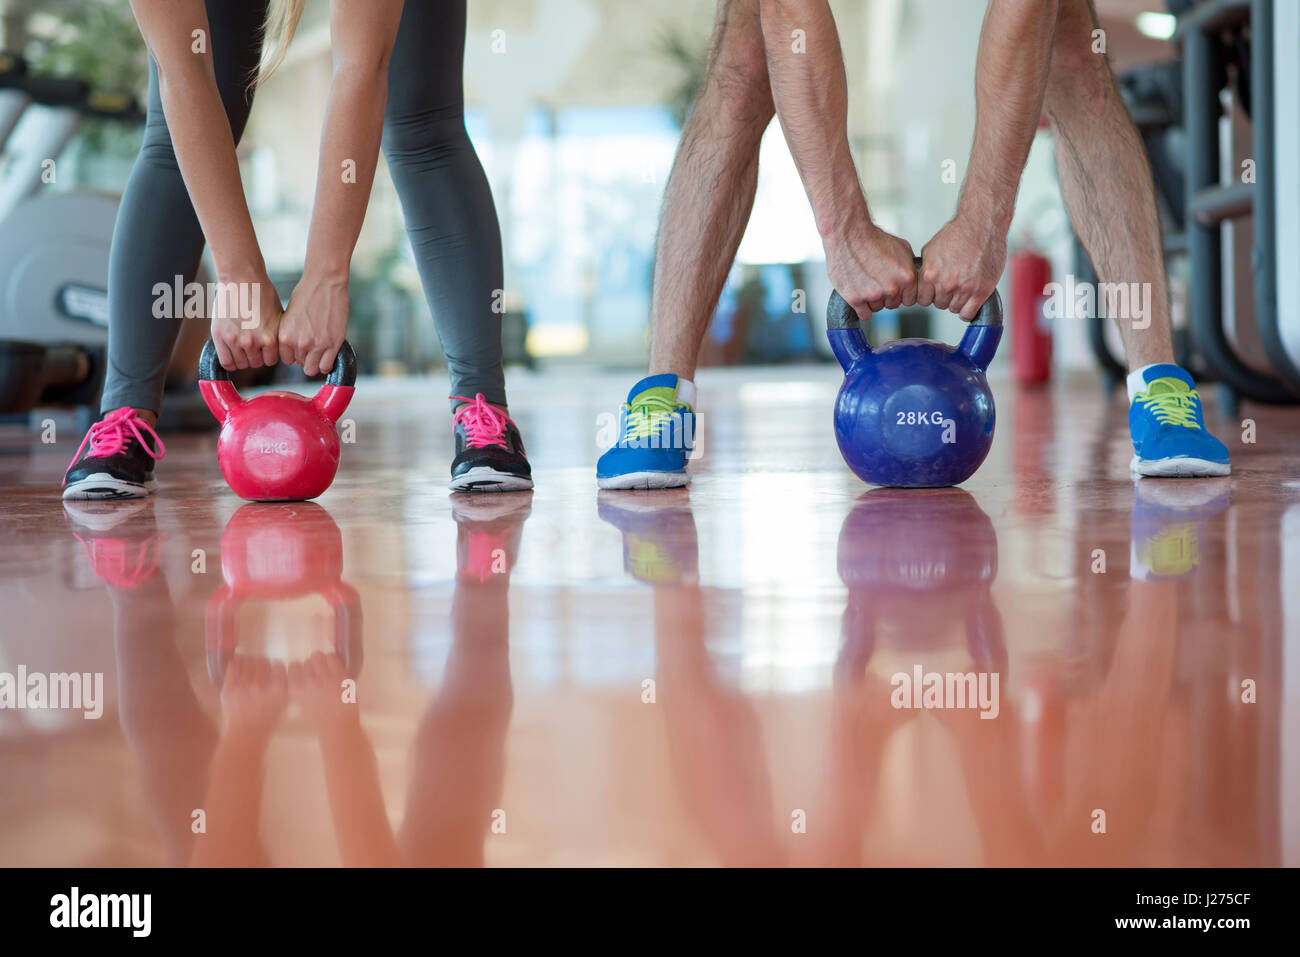 Fit people working out in fitness class at the gym - Stock Image